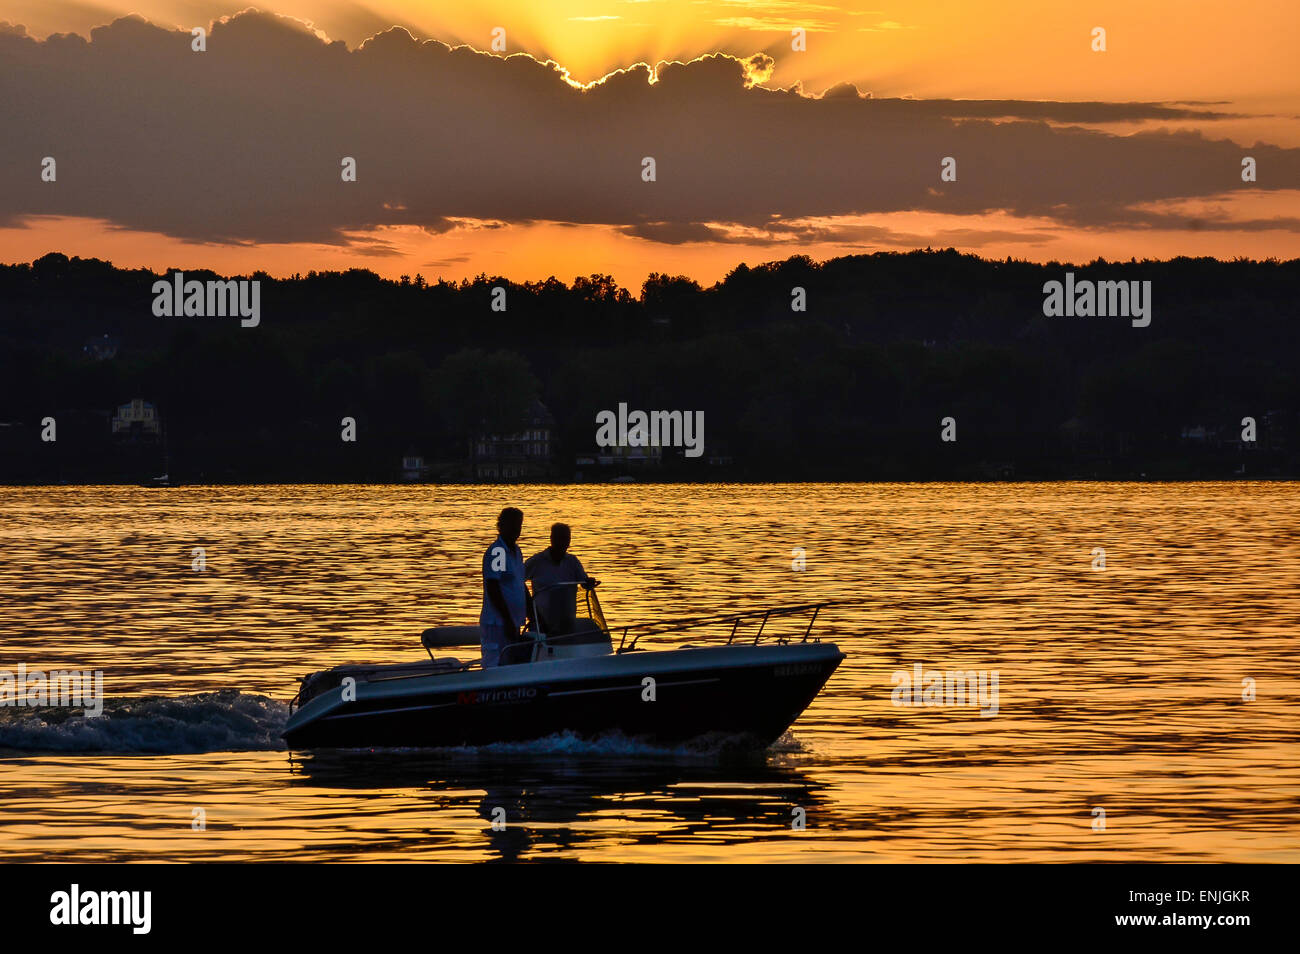 picturesque sunset over Lake Starnberg near Schloss Berg with the silhouette of a motorboat and the reflexion of - Stock Image